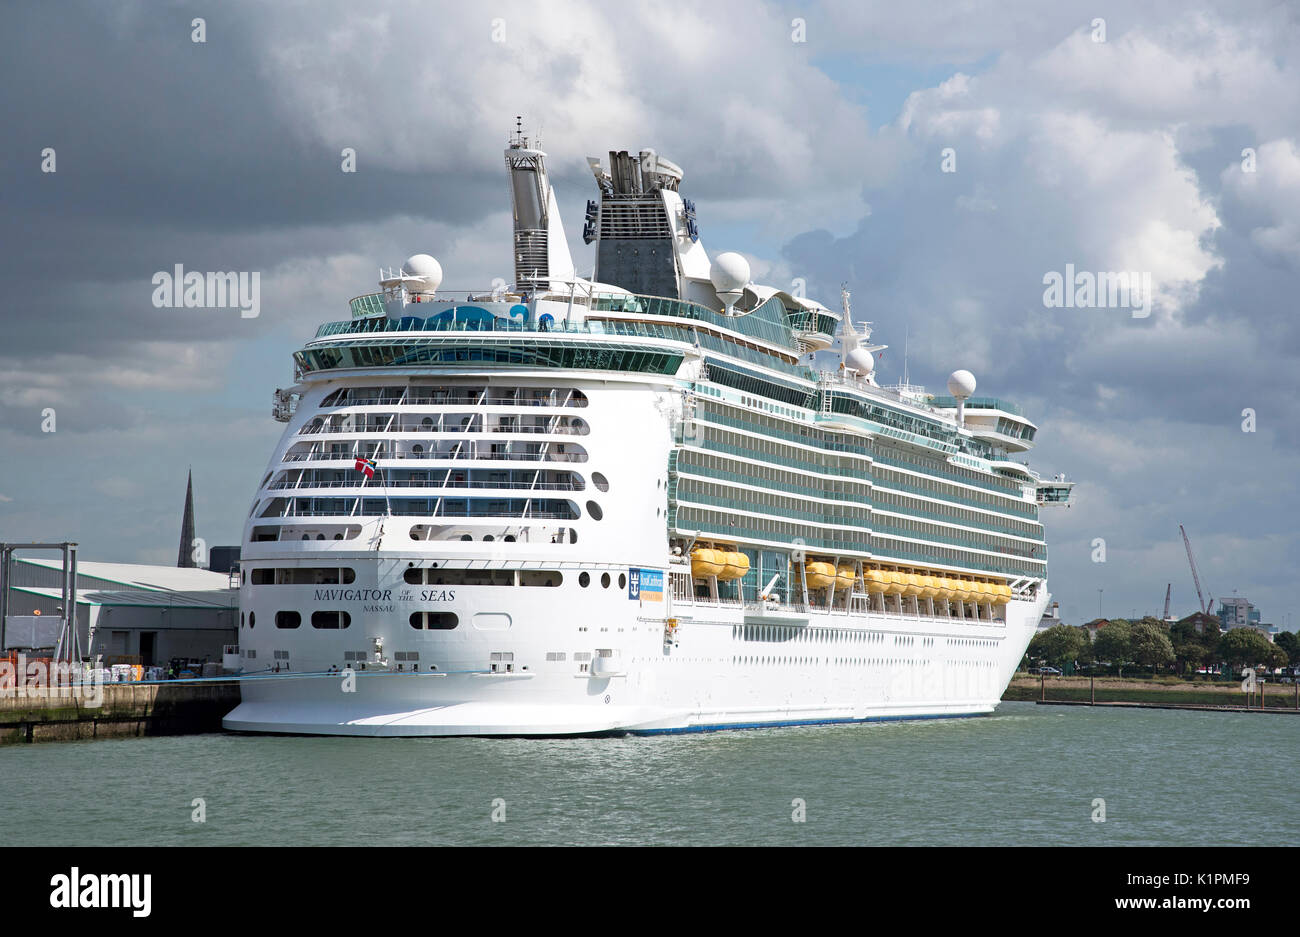 Cruise ship Navigator of the Sea alongside in the port of Southampton - Stock Image